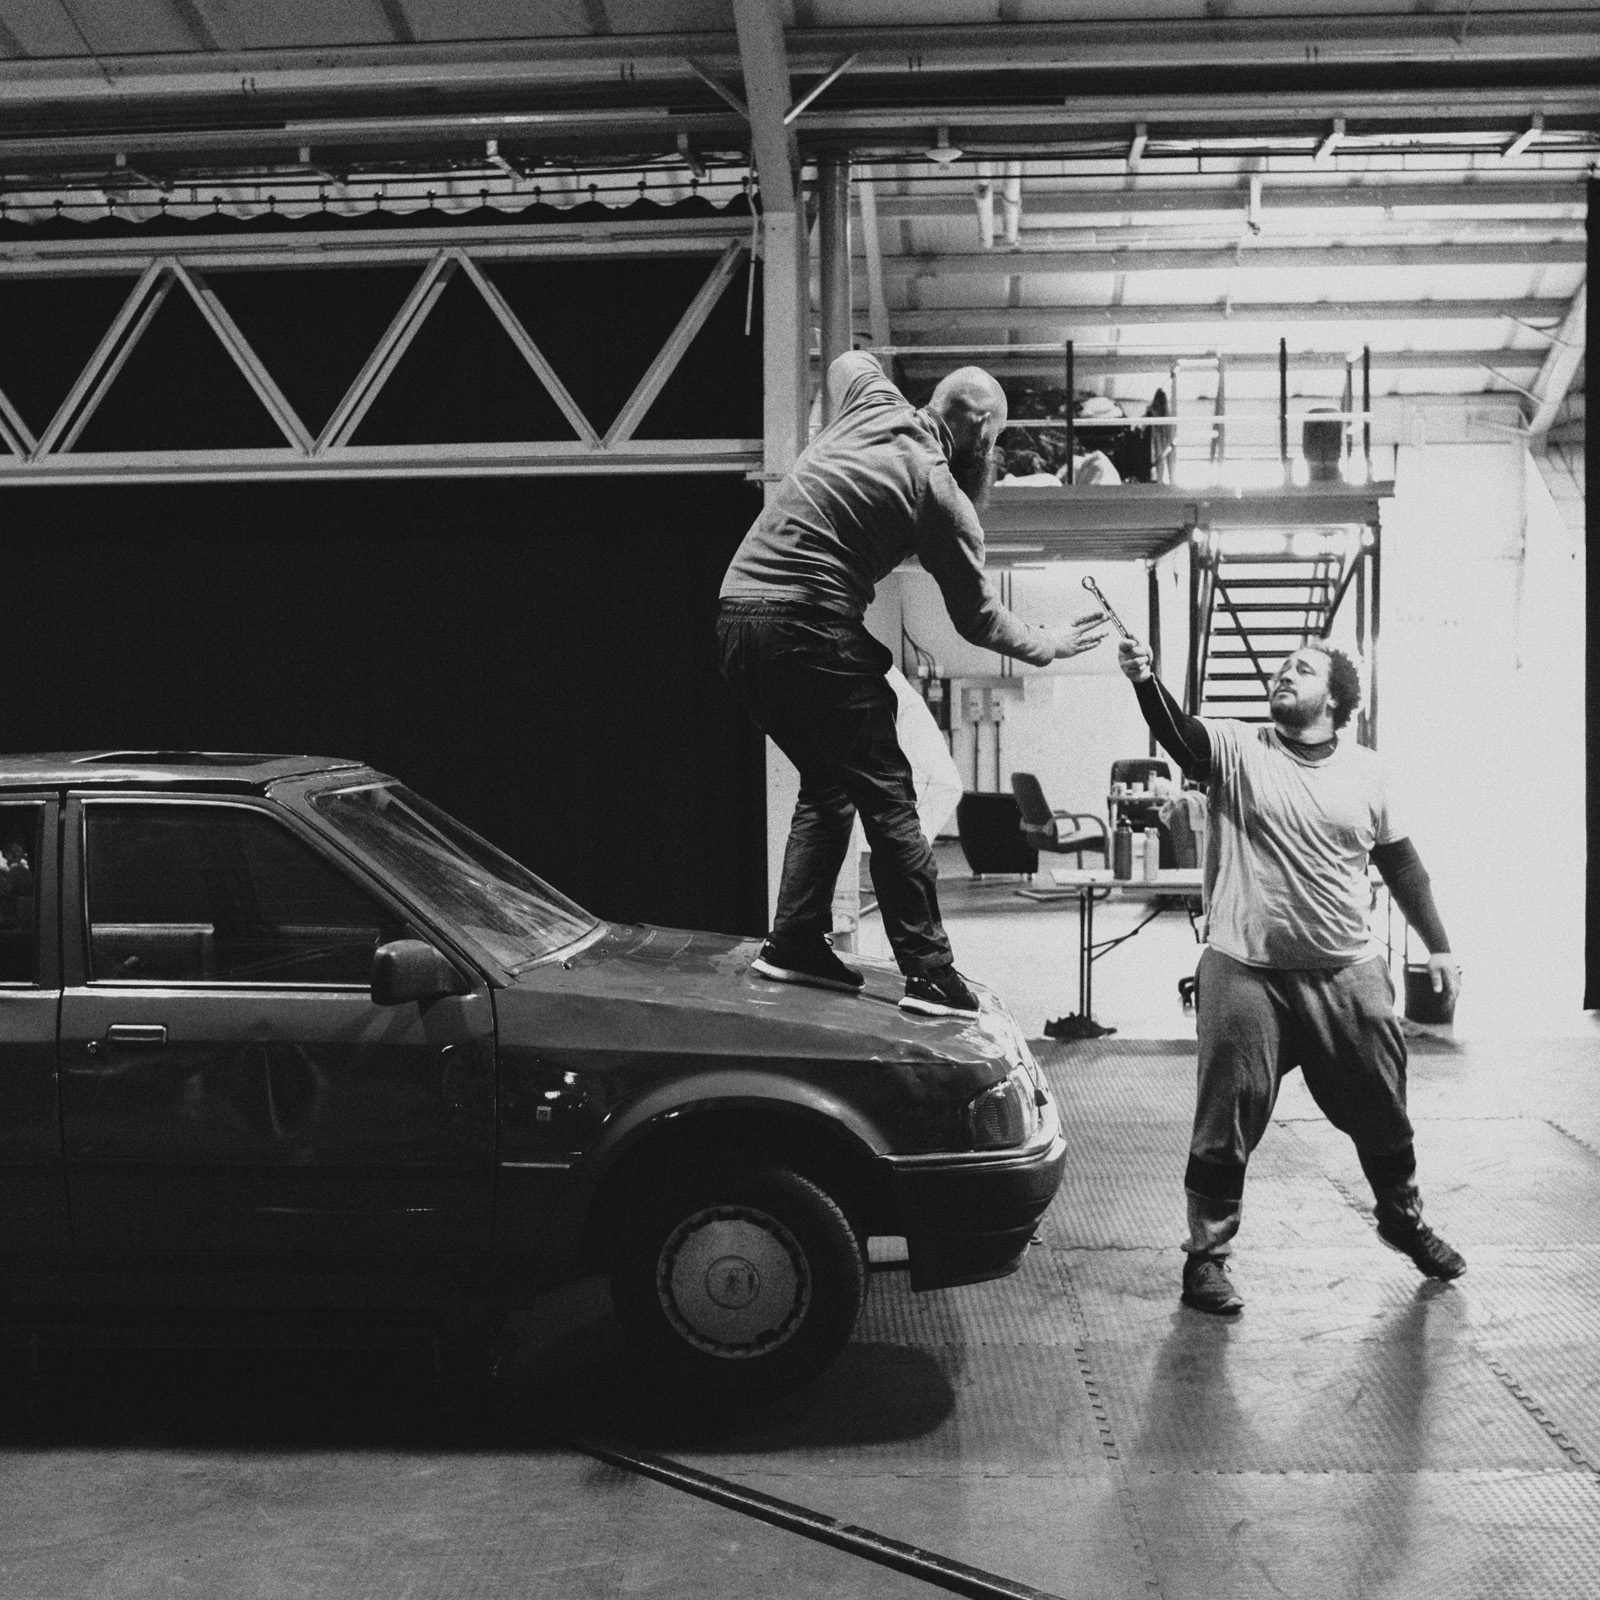 Two dancers rehearsing on a car